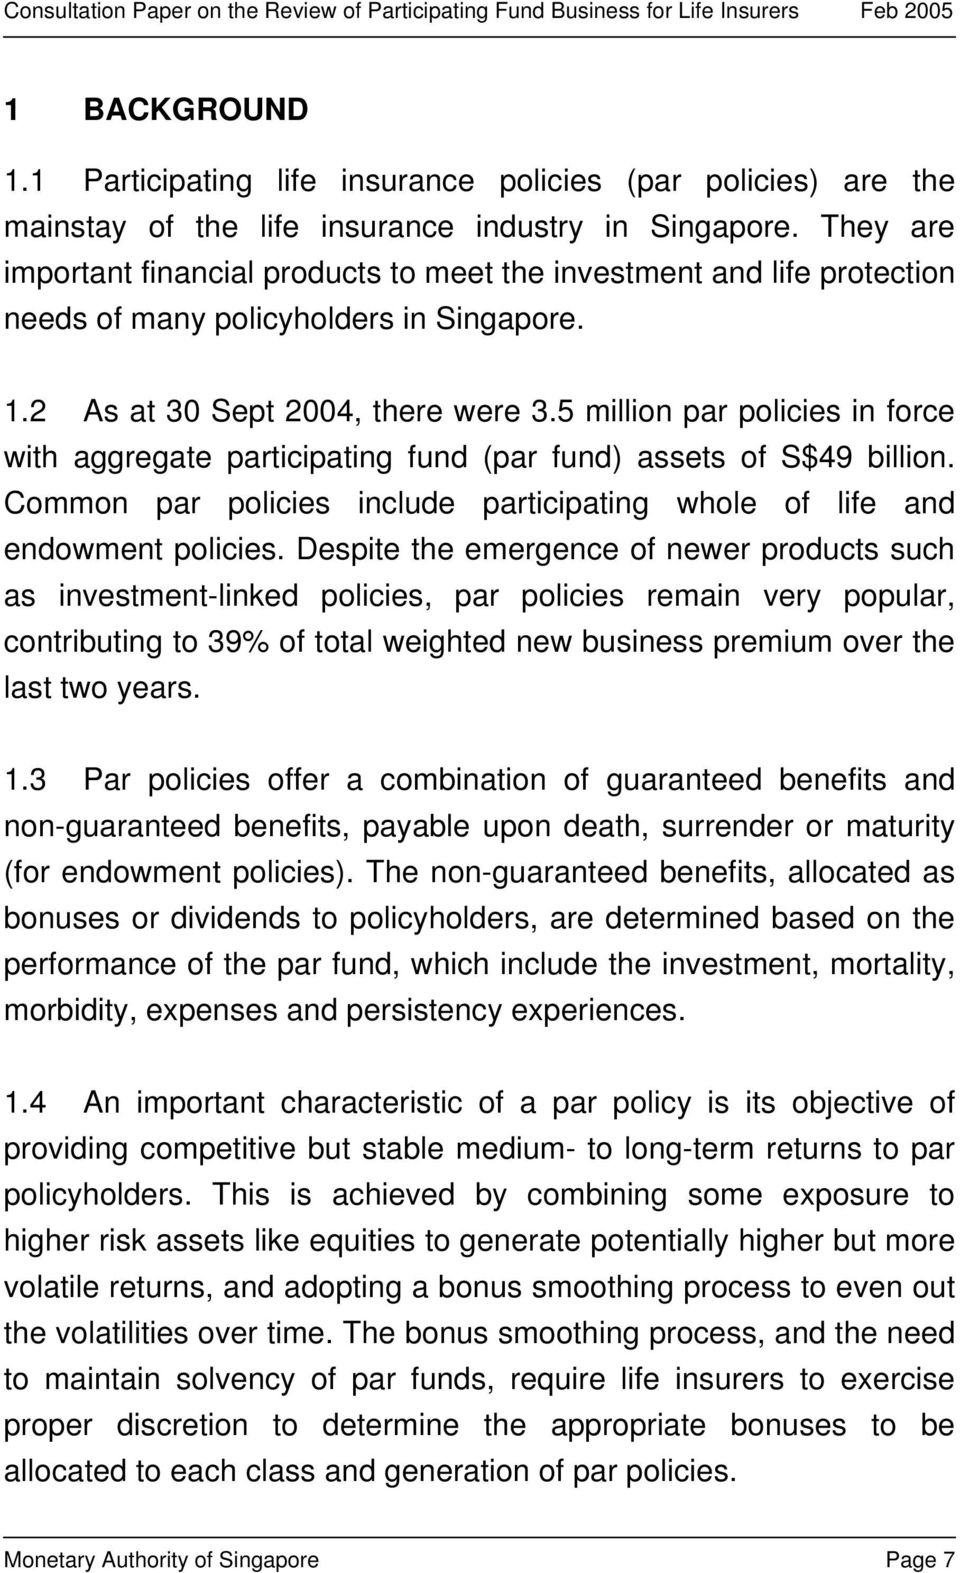 5 million par policies in force with aggregate participating fund (par fund) assets of S$49 billion. Common par policies include participating whole of life and endowment policies.